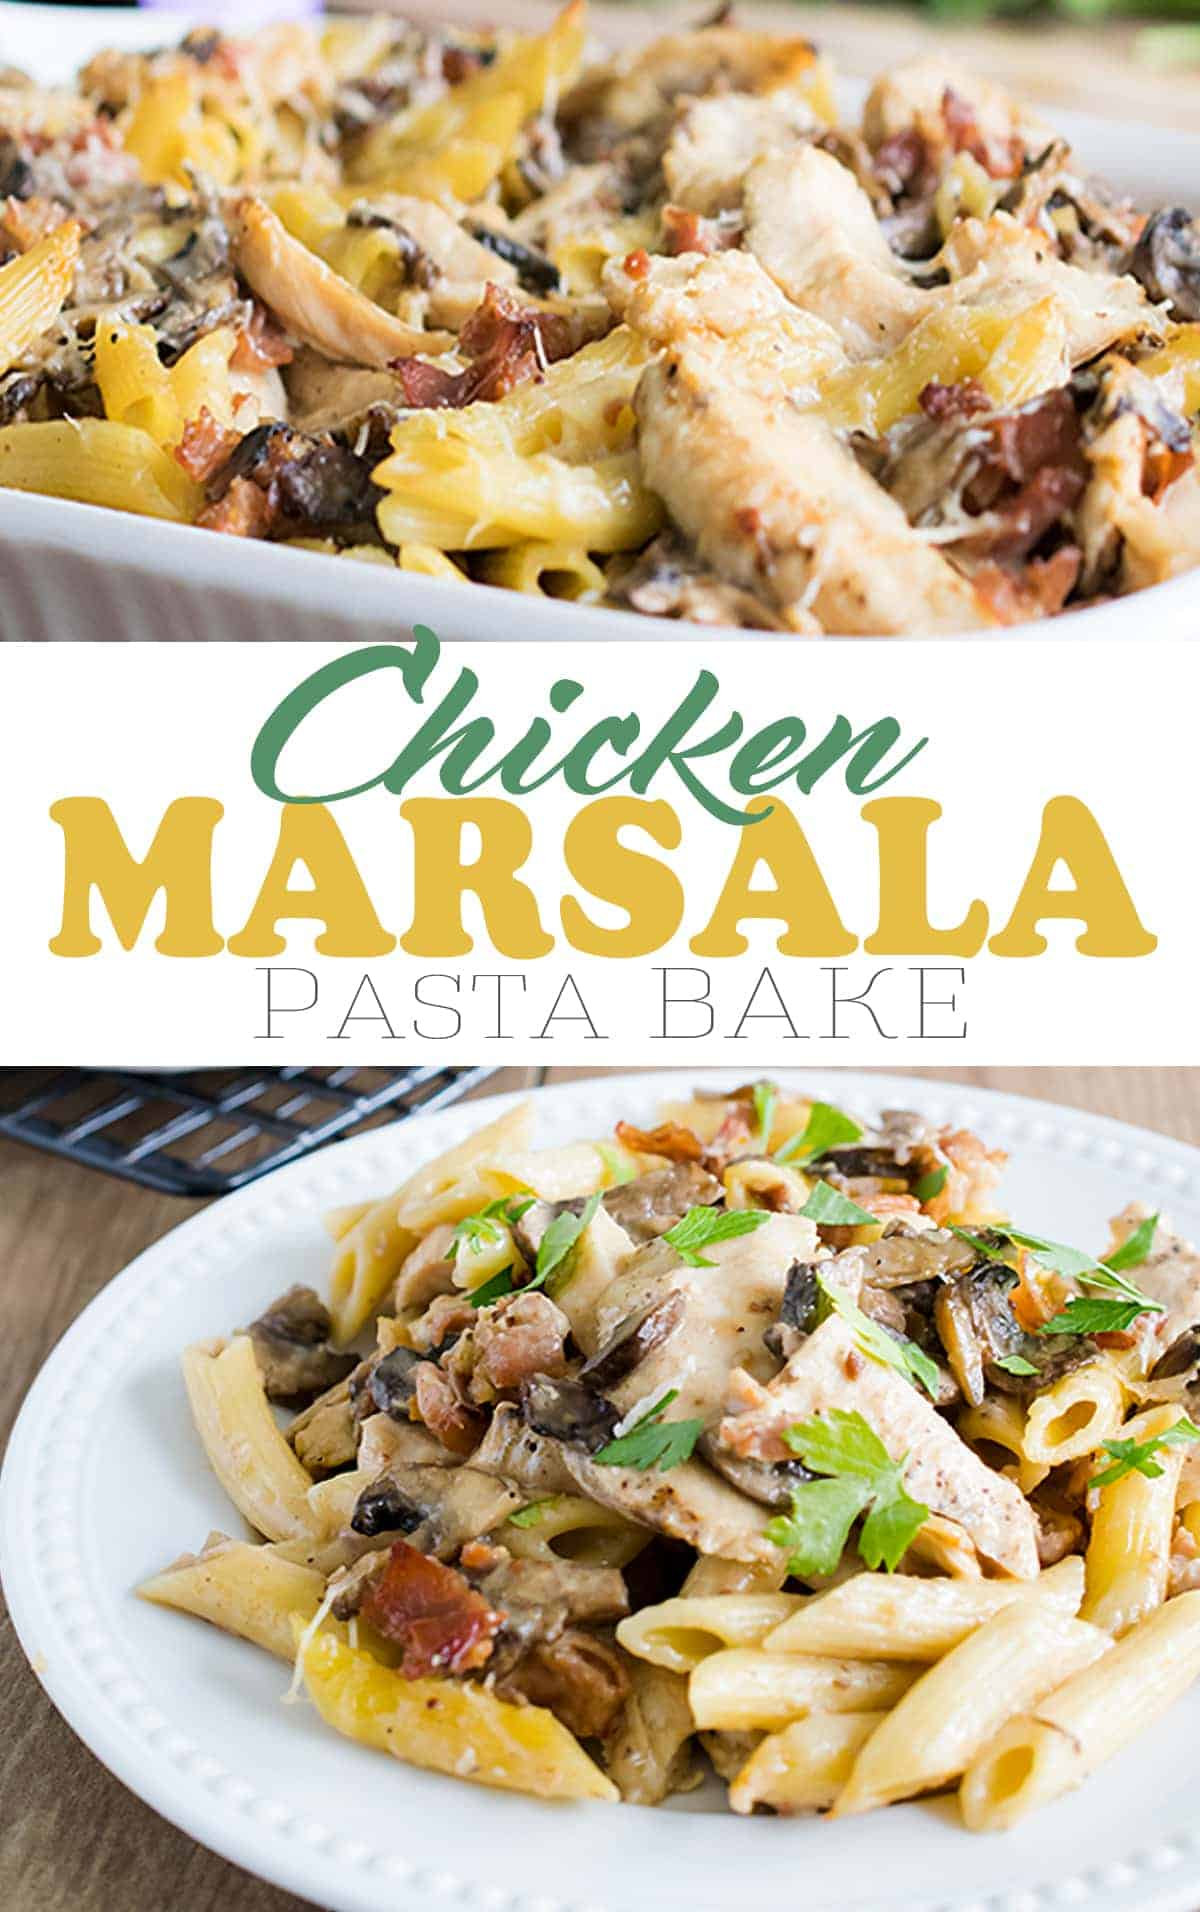 Creamy chicken marsala pasta bake - mushrooms, prosciutto, and Parmesan cheese enhance an already delicious chicken marsala base.